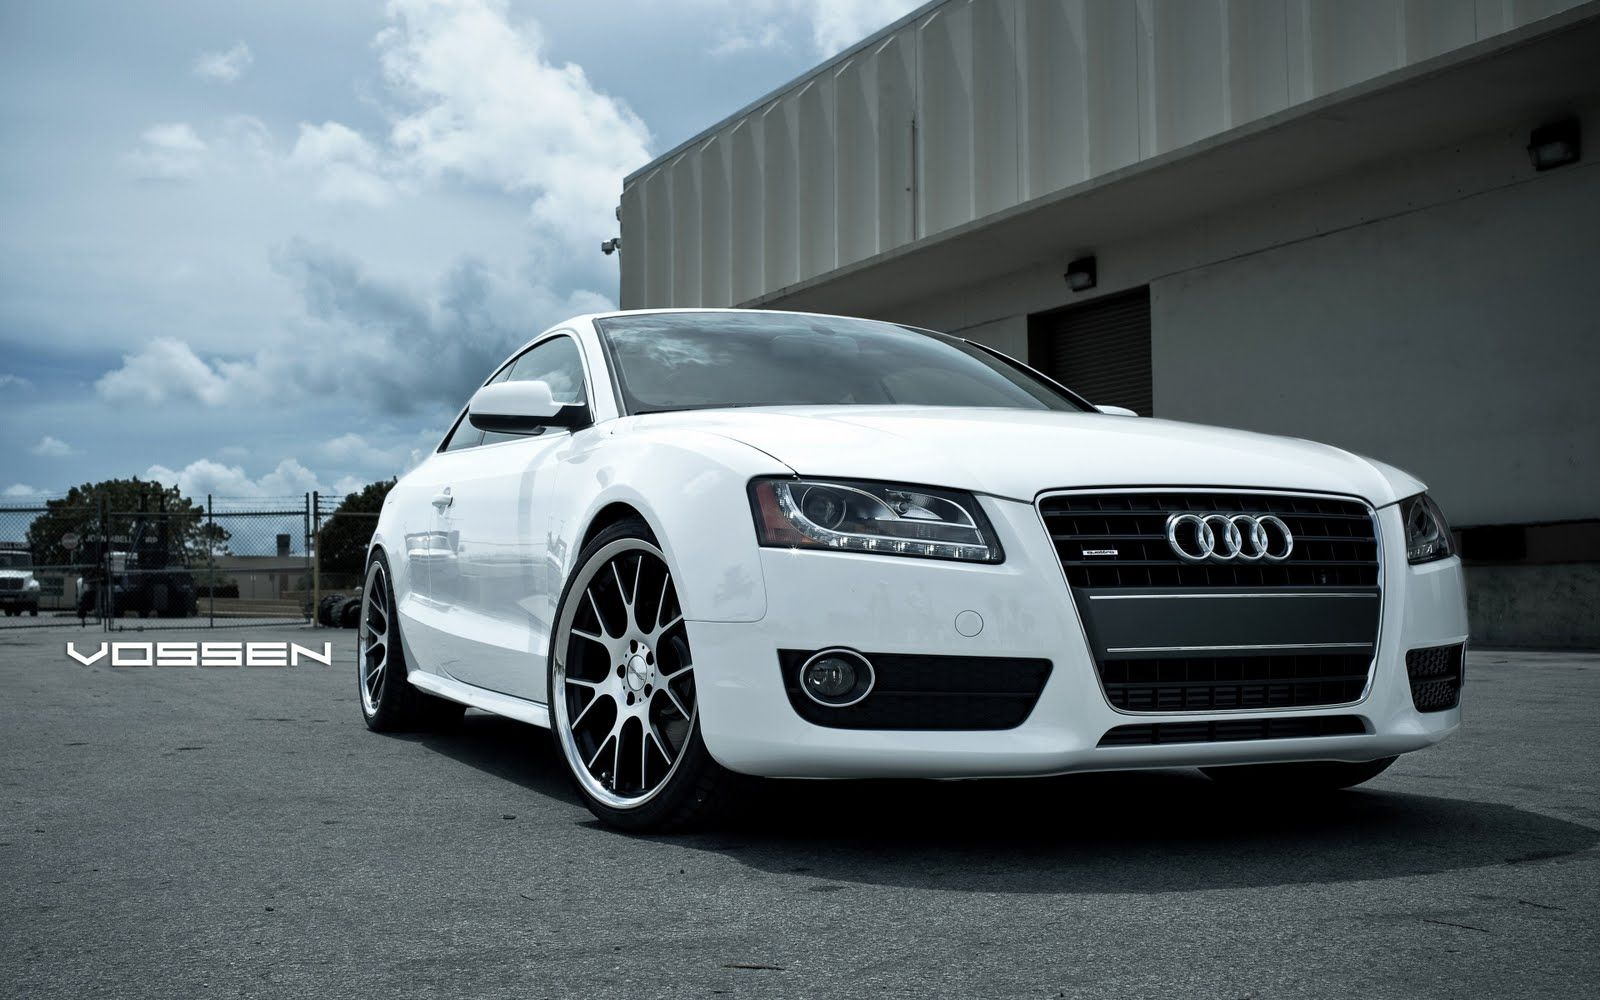 Audi A Wallpaper Audi Cars Wallpapers For Free Download About Black Audi Audi Wallpaper